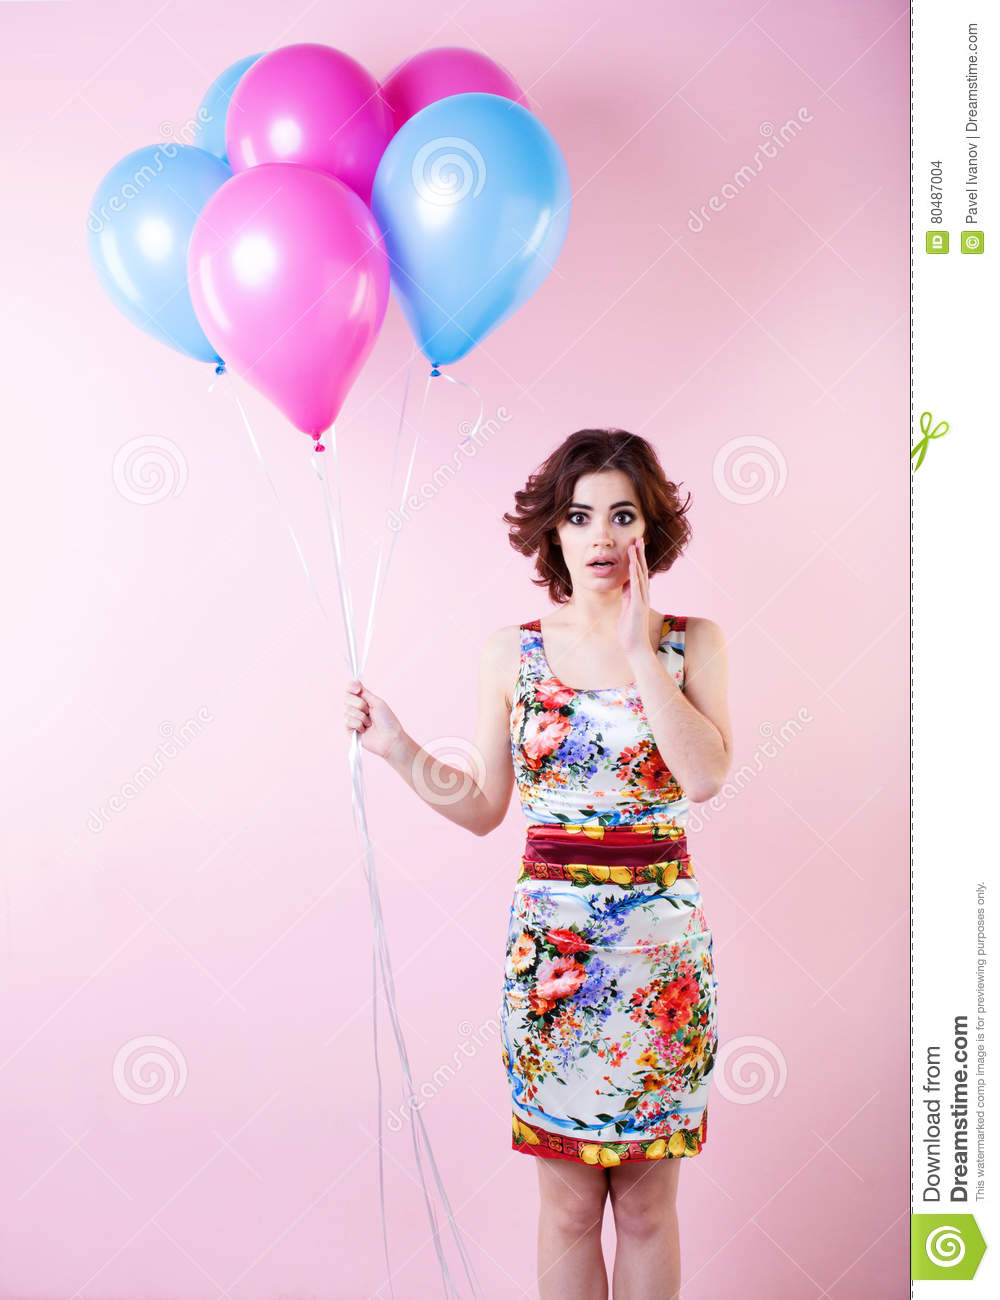 Beautiful woman with balloons. Concept Celebration and Party.